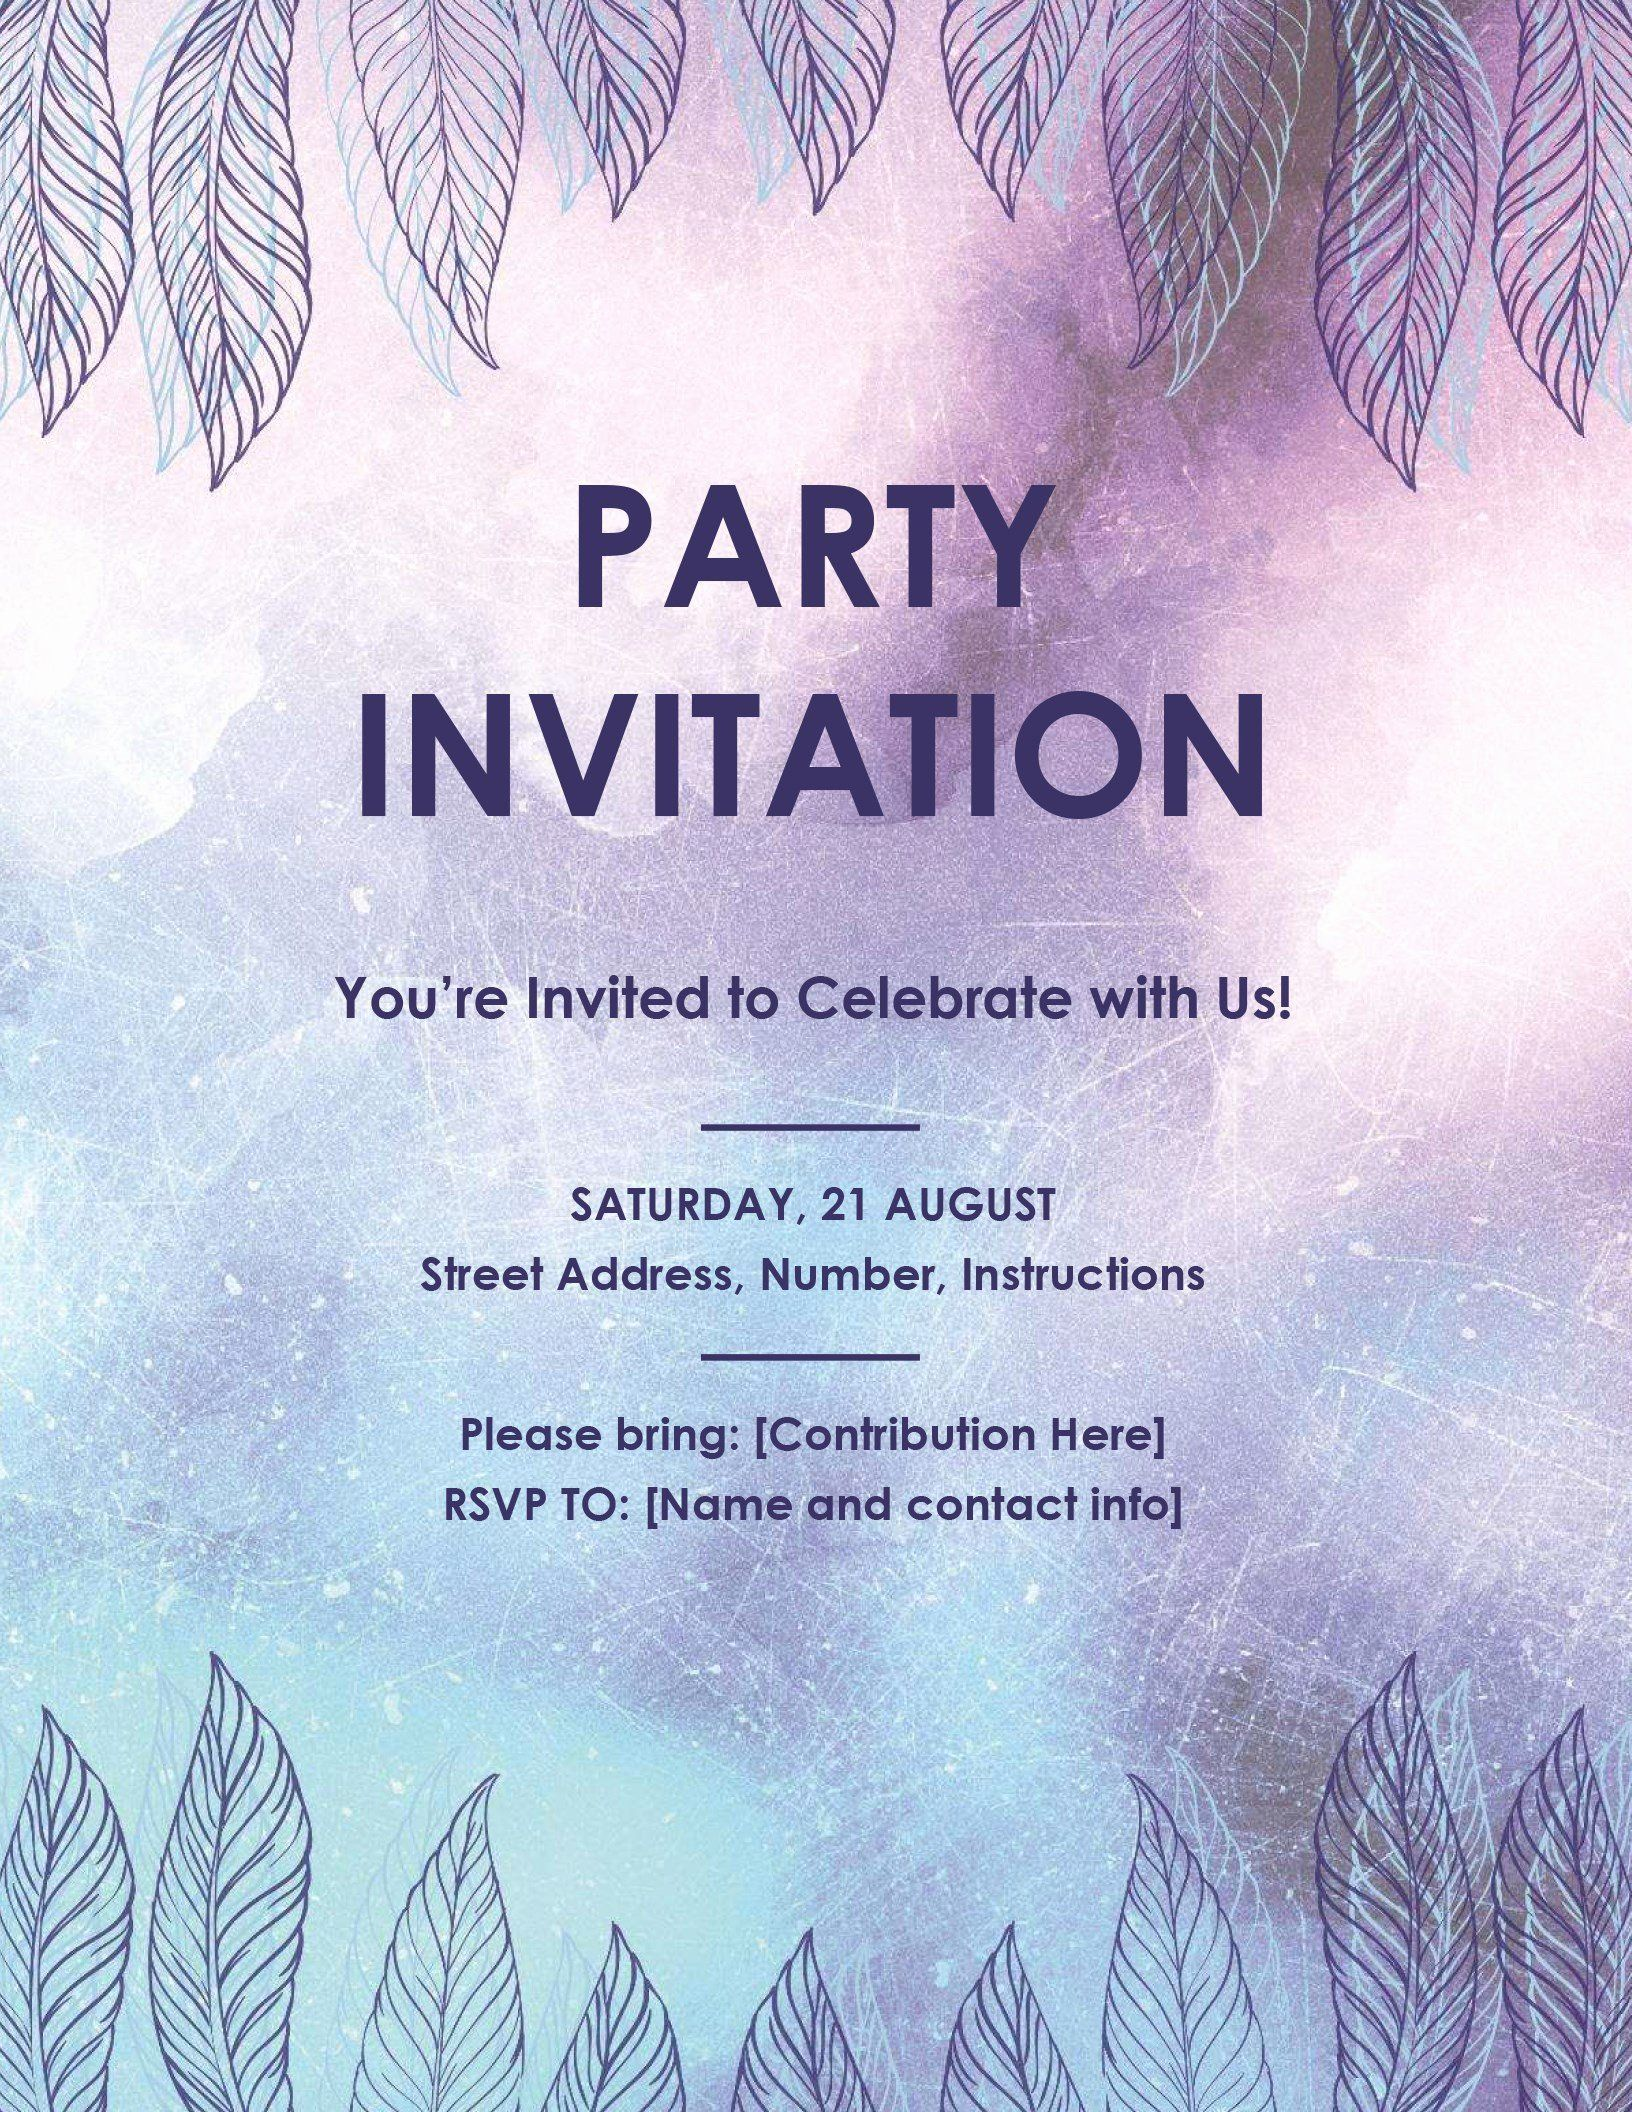 Event Flyer Templates Free Awesome Flyers Fice  Awesome party